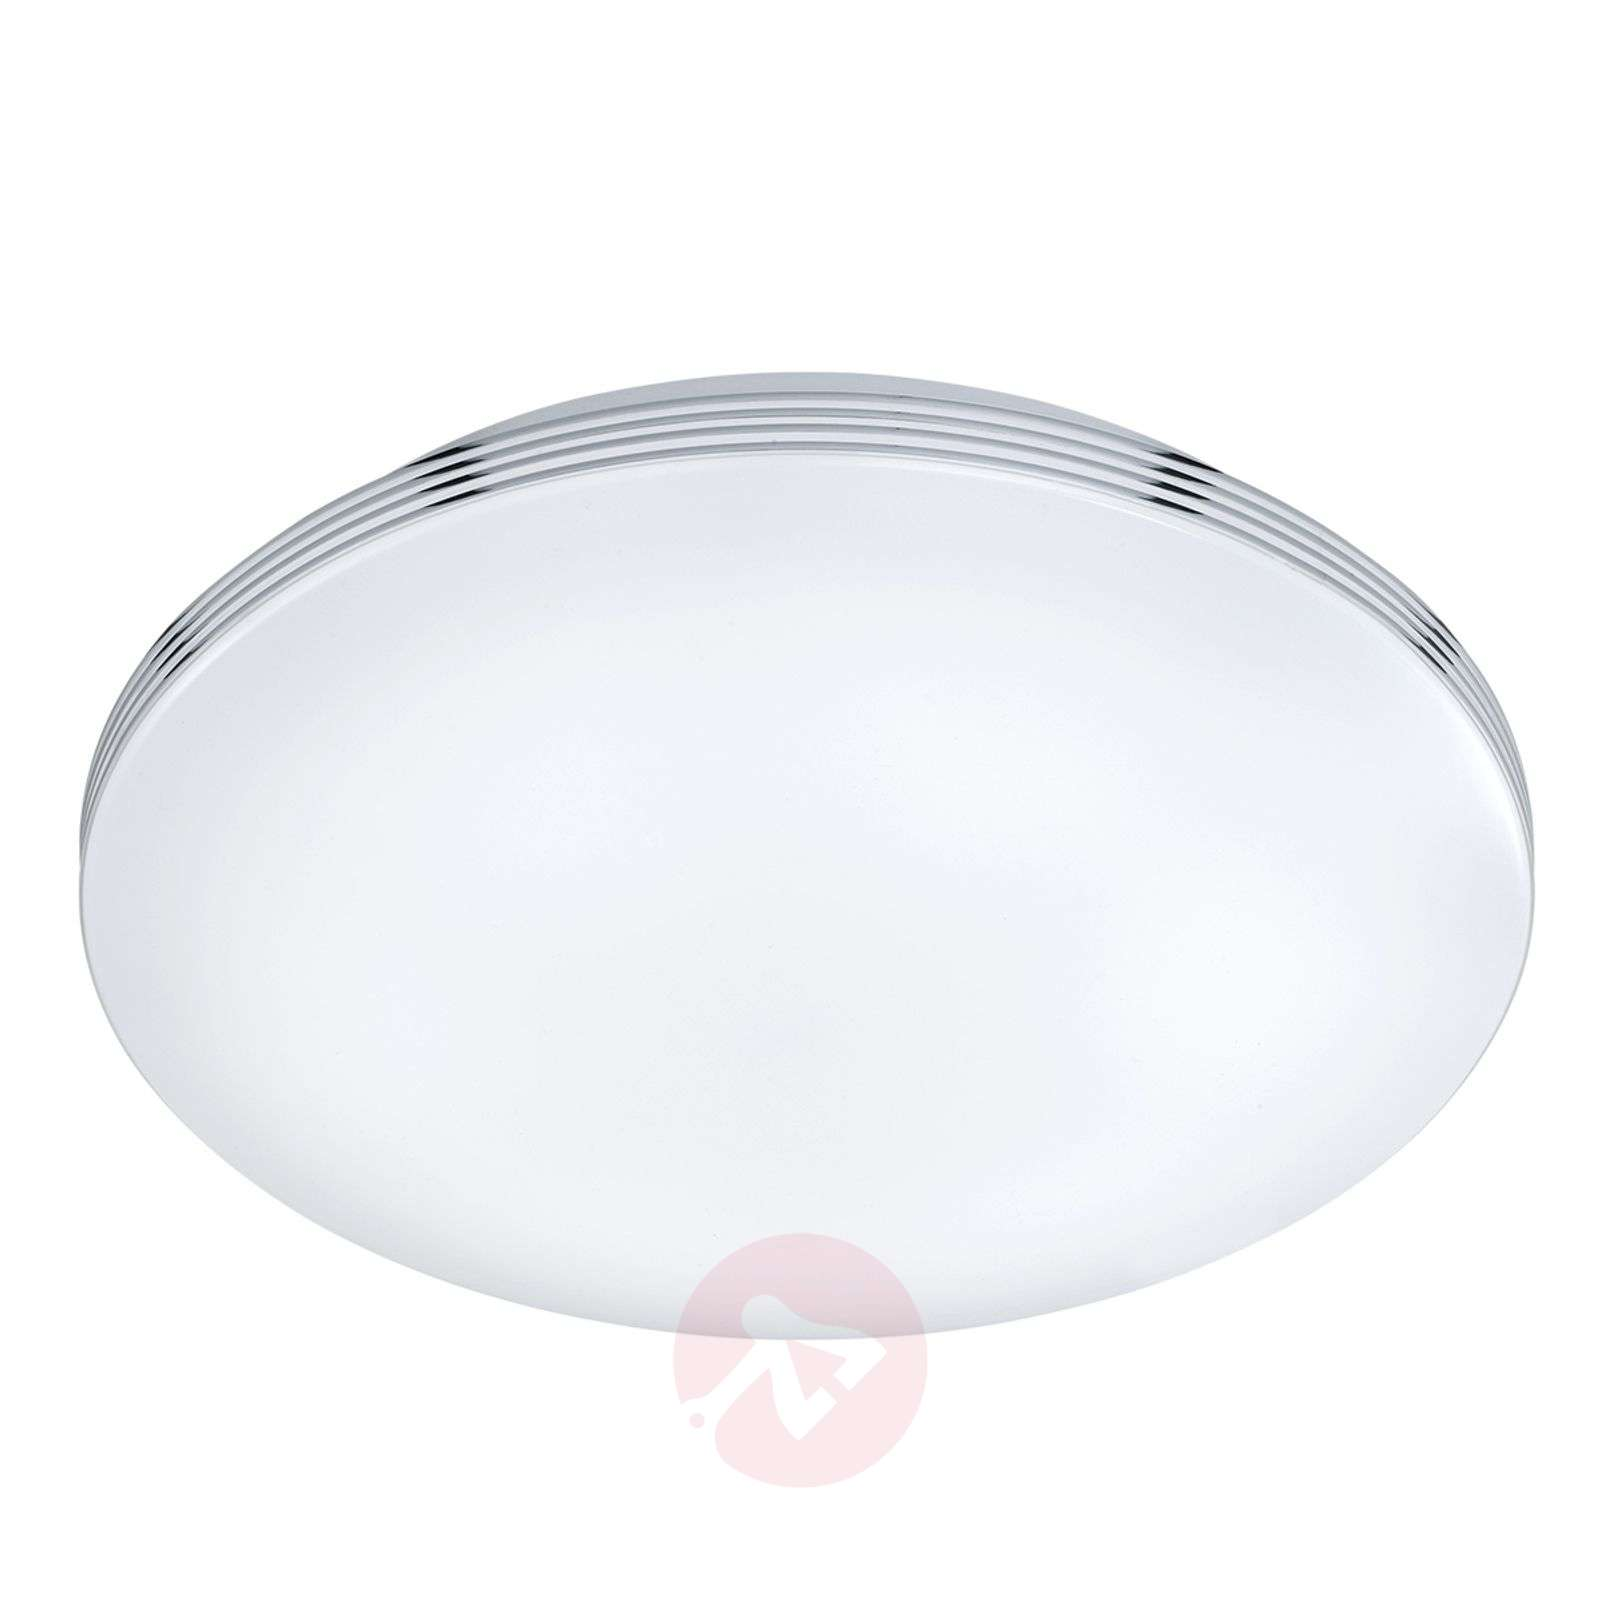 fixtures ceiling glass bathroom light hereford retro contemporary design products clear rated pendant globe